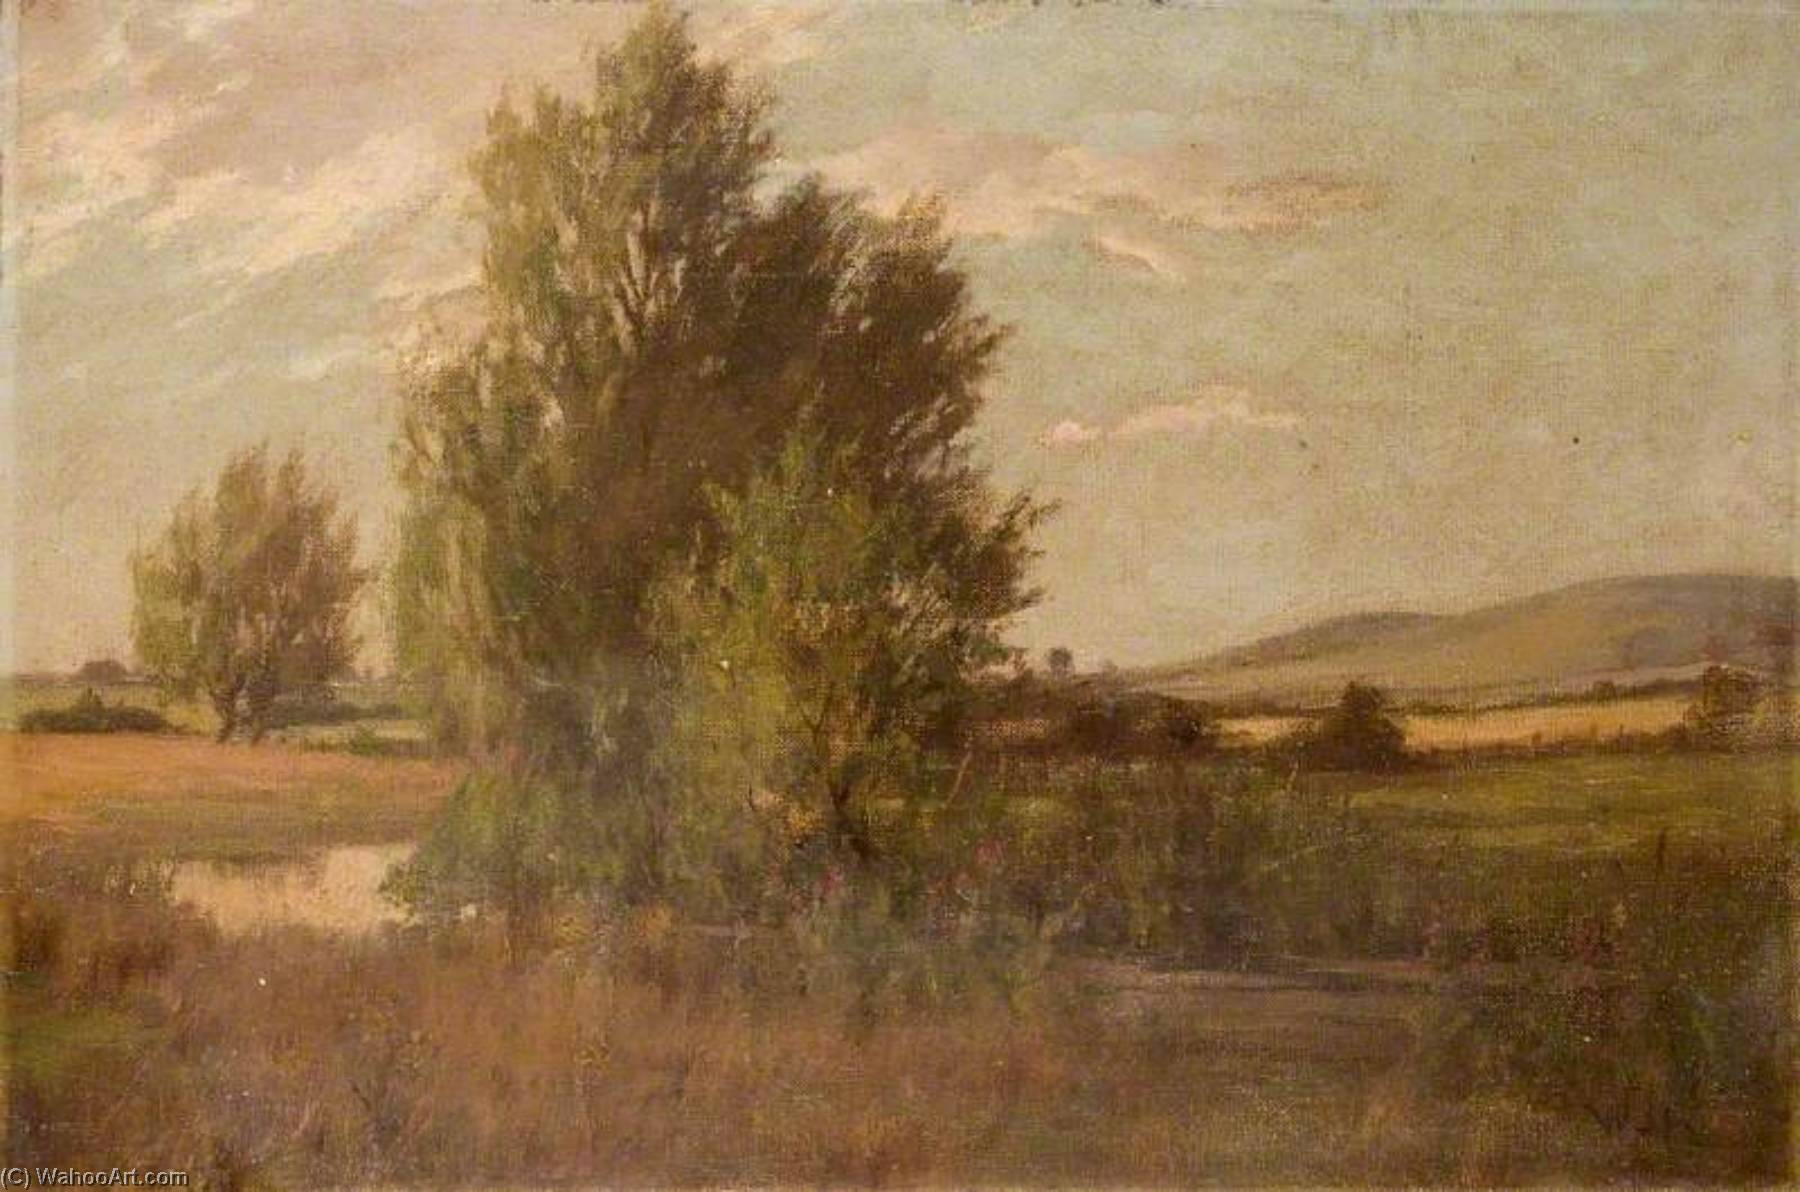 Landscape with a Tree by a River and Hills in the Distance, Oil On Canvas by Theodor Kern